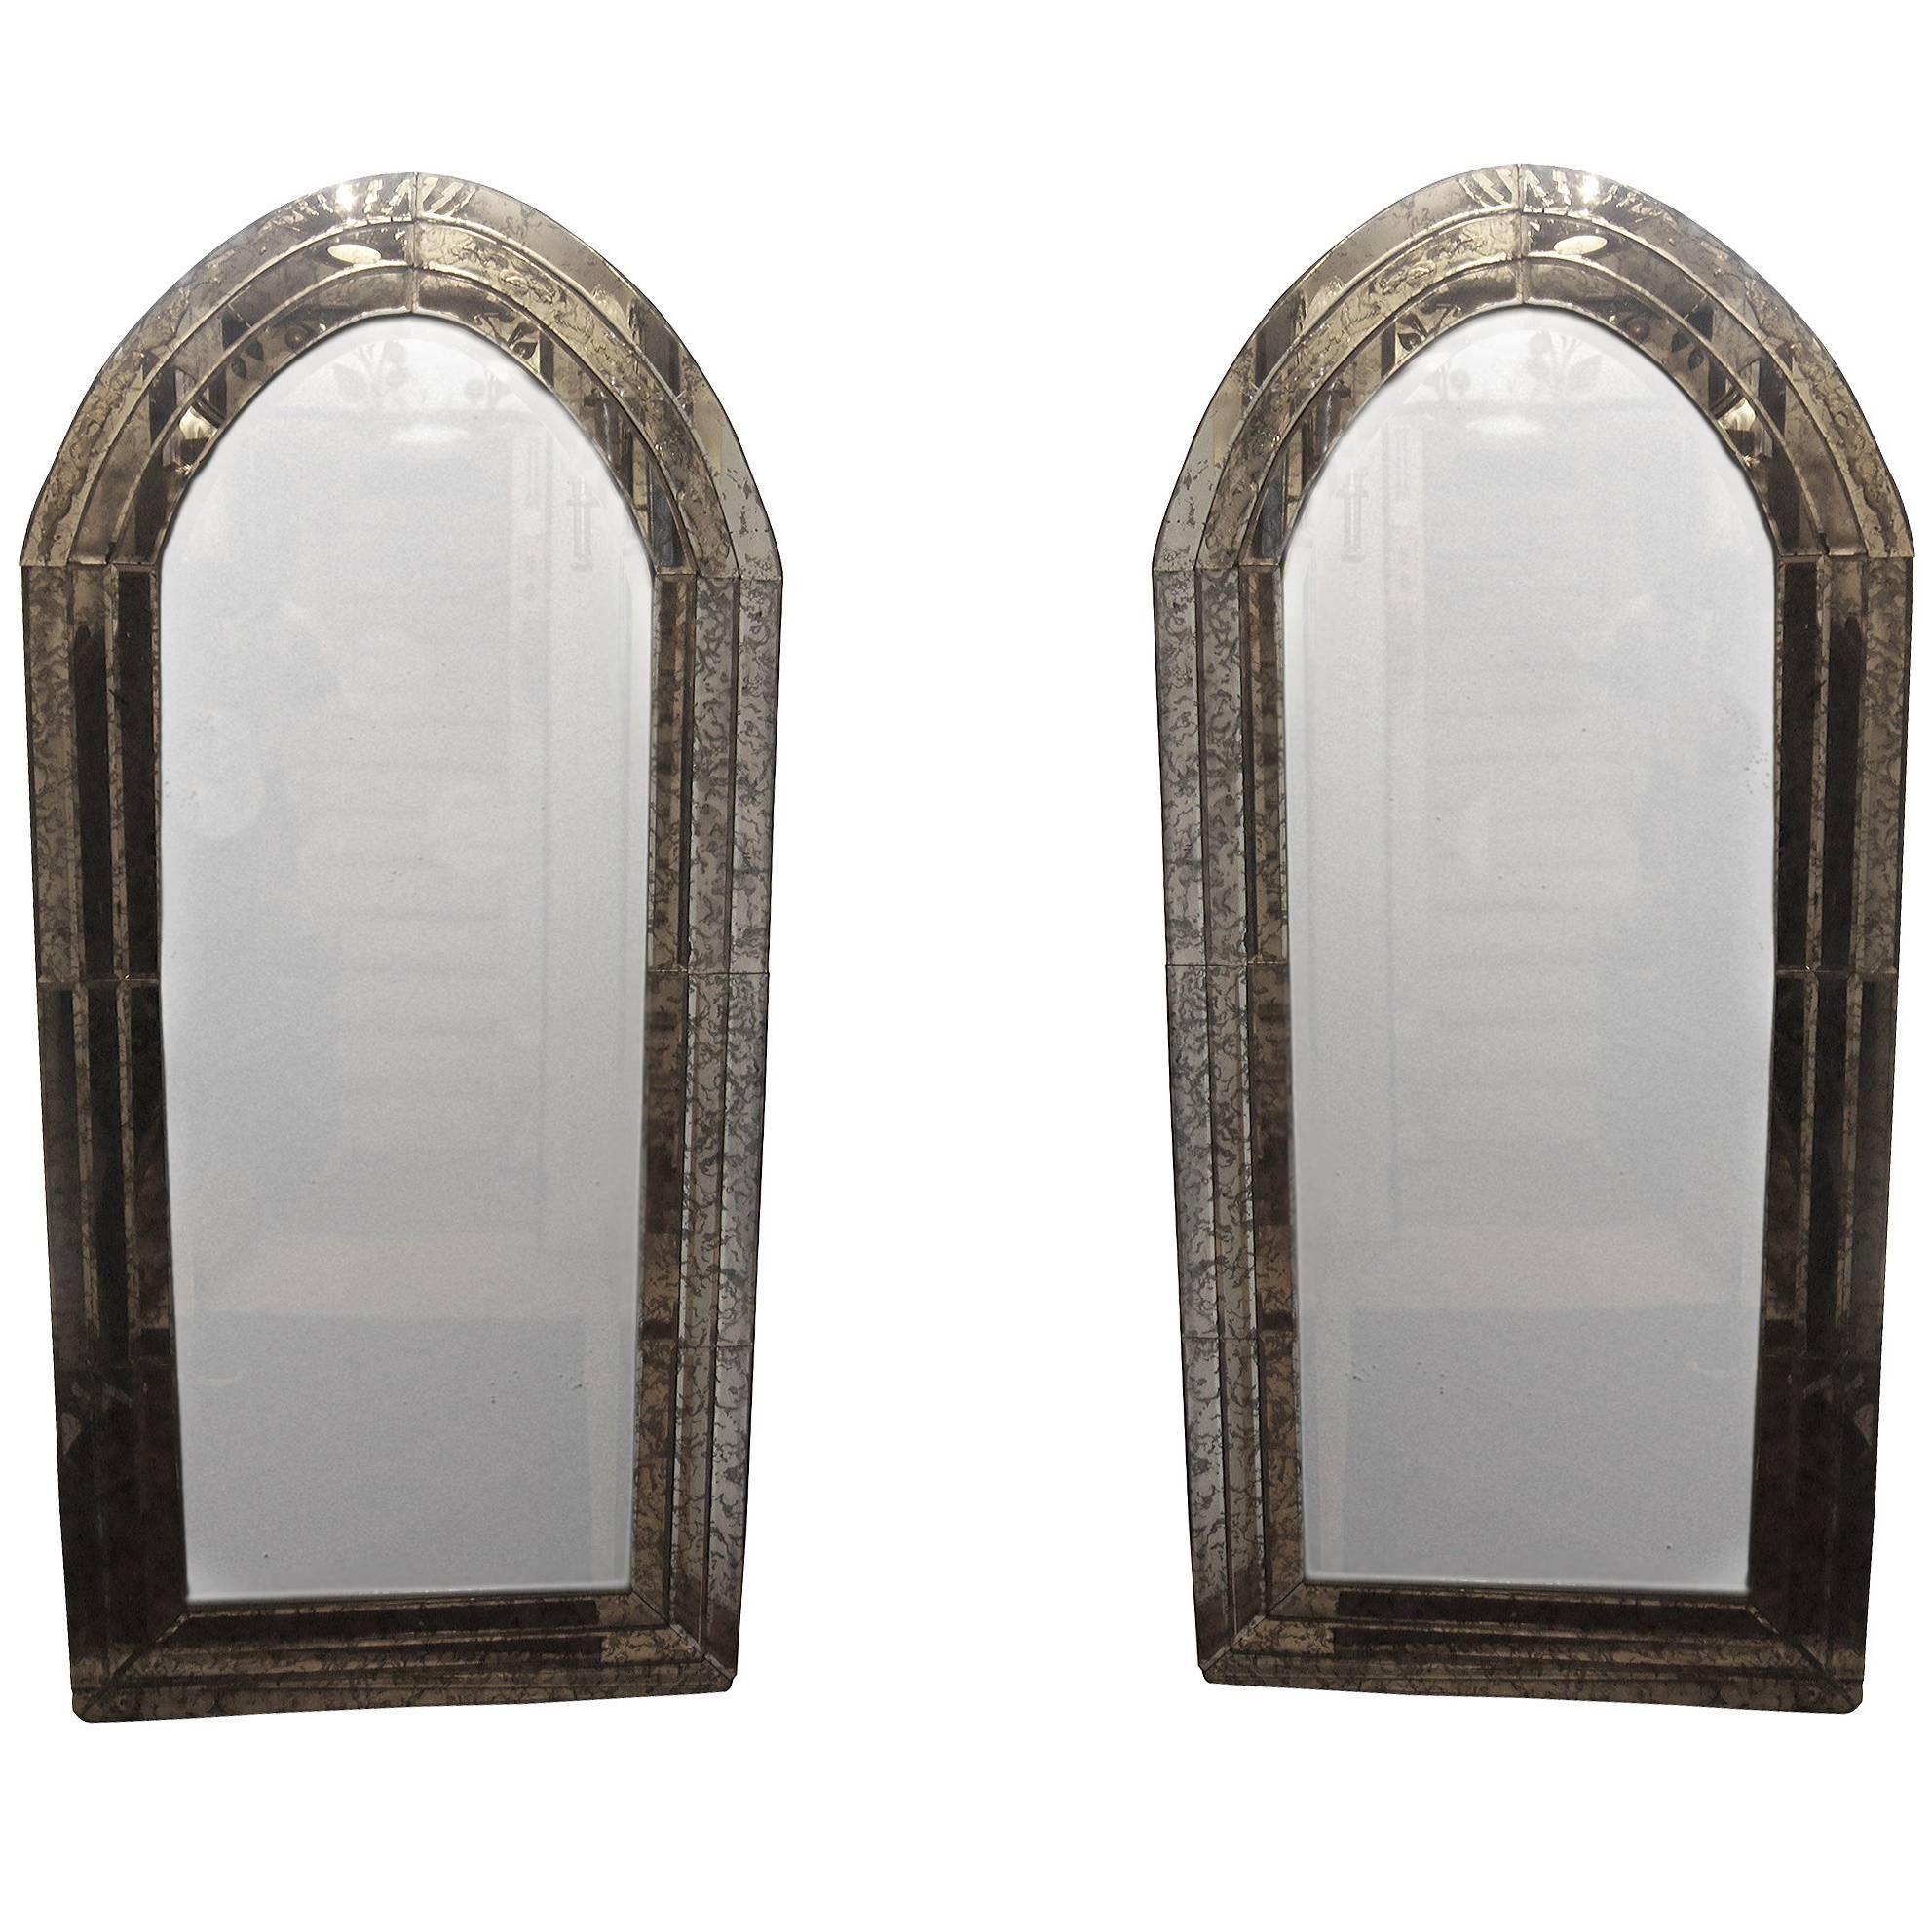 Pair of Italian Arched Mirrors